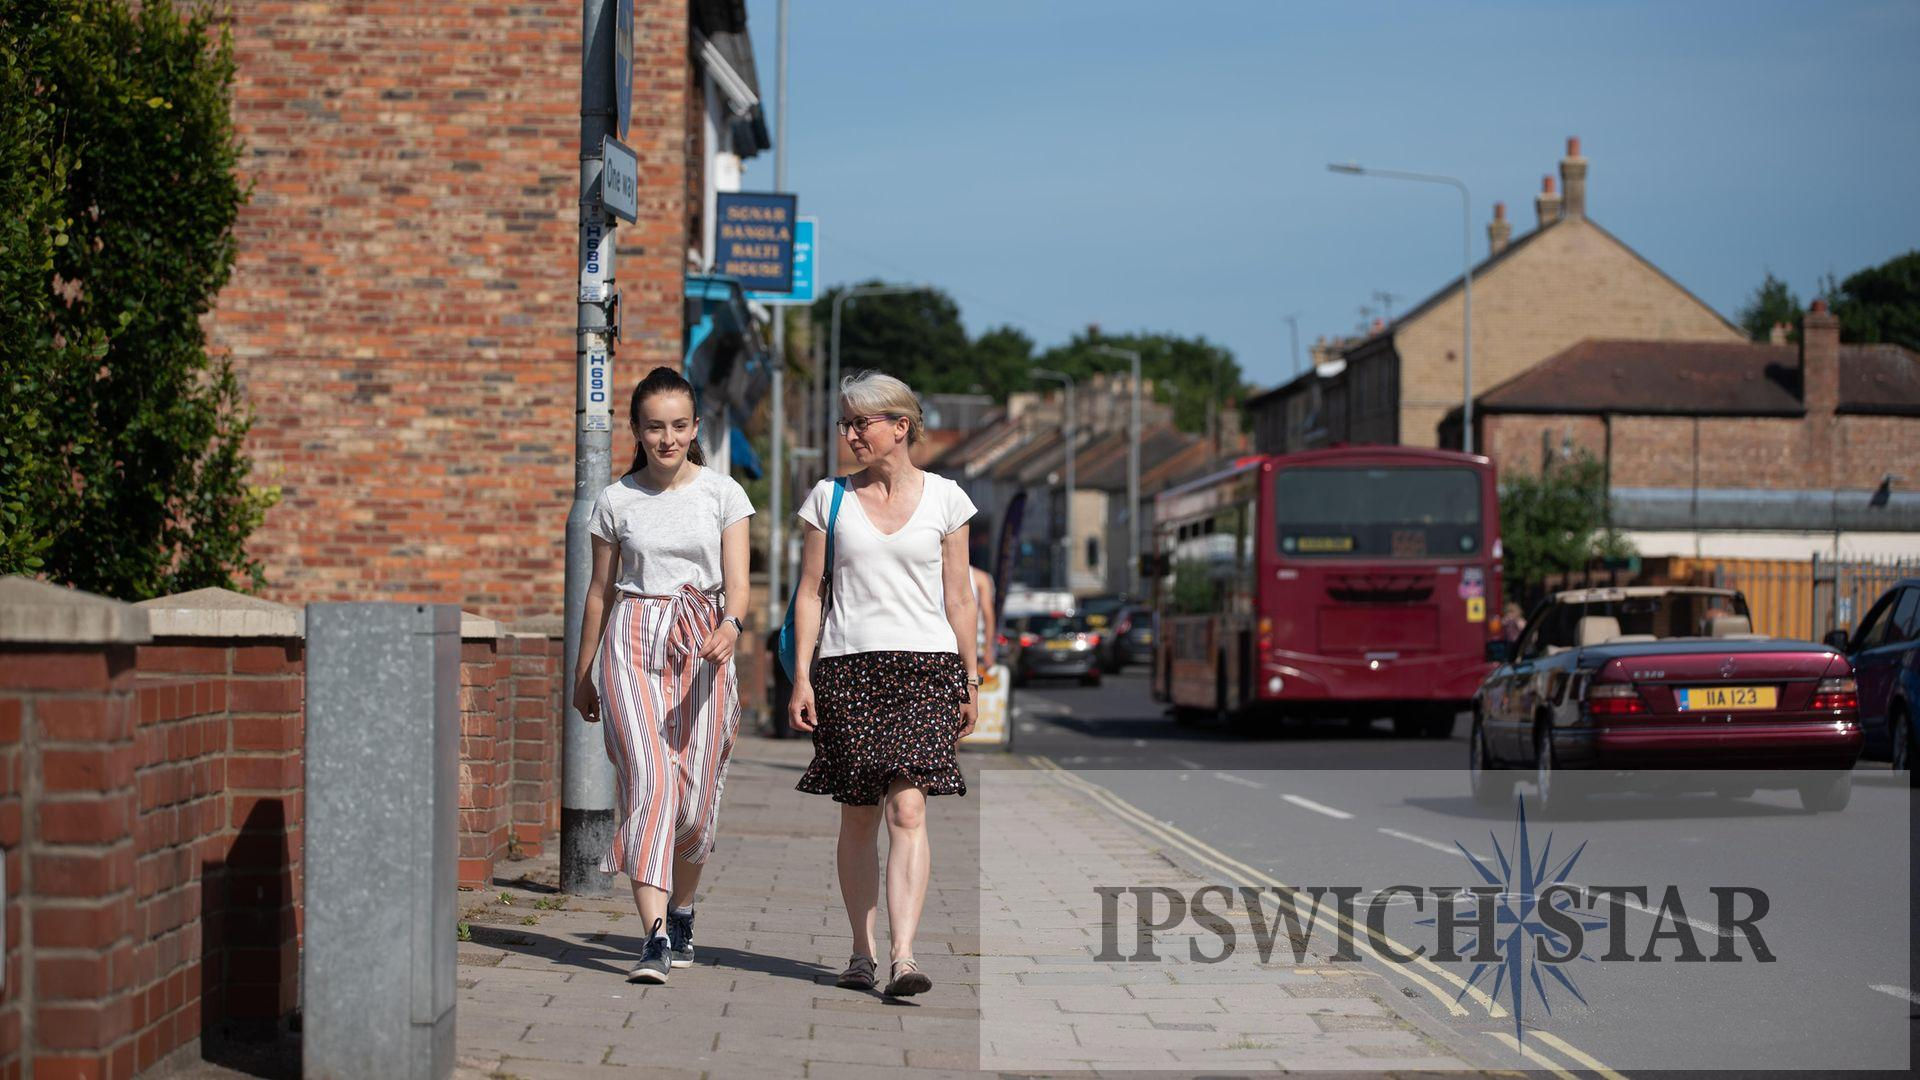 Teenager walks every named road in Ipswich — completing nearly 600km